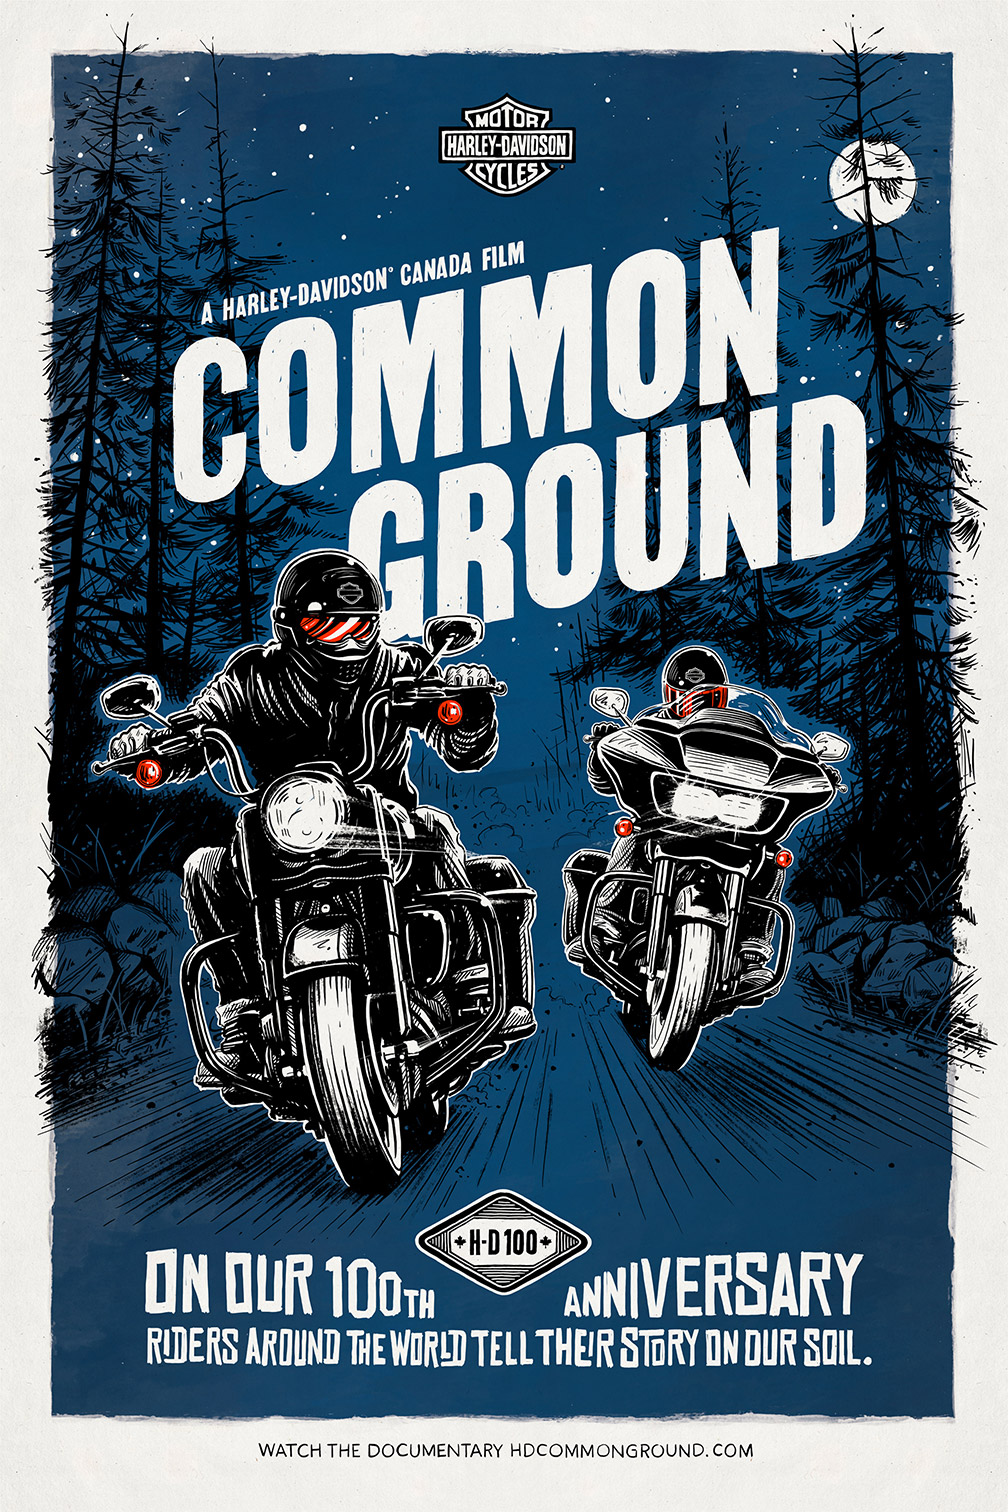 Harley-Davidson Paves New Ground with Online Docu-Series and ...